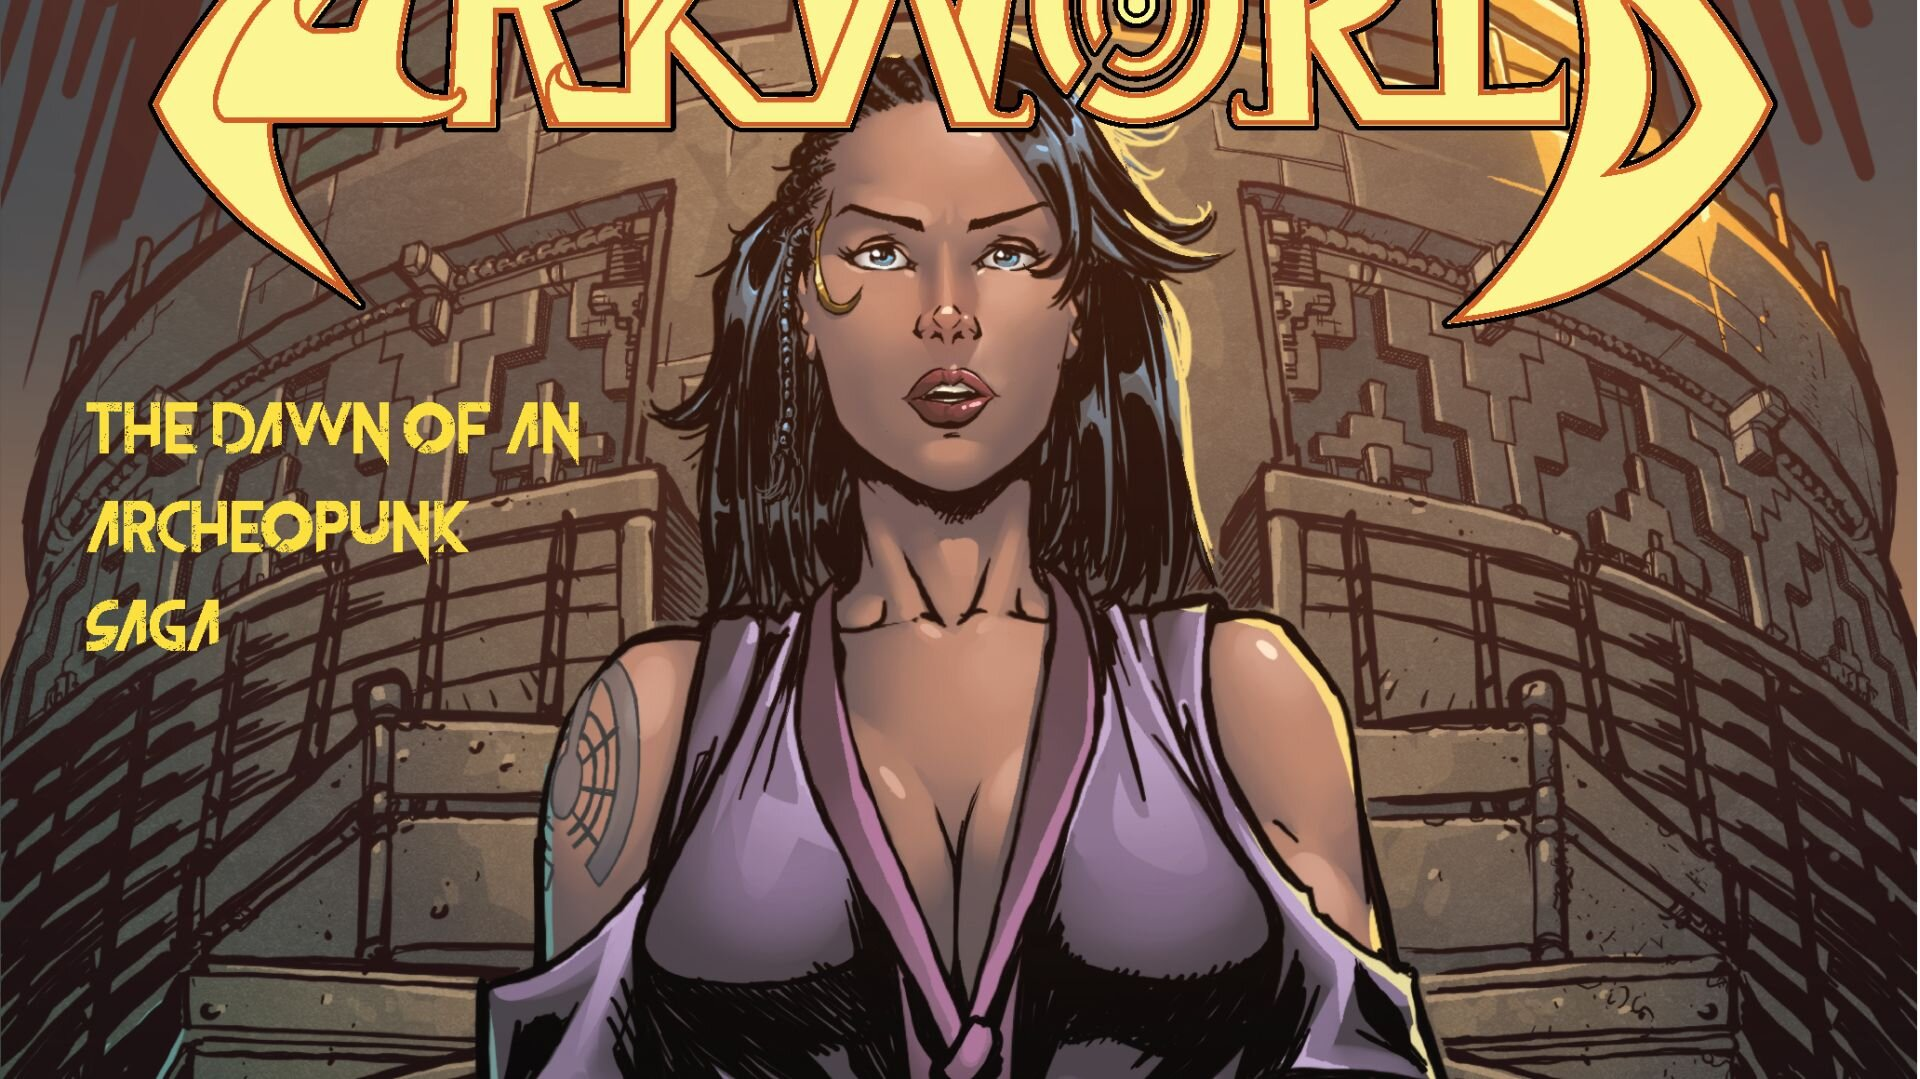 Arkworld Is A New Archeopunk Comic From Josh Blaylock Coming In Spring 2020 Geektyrant Tv movie nov 17, 2020. arkworld is a new archeopunk comic from